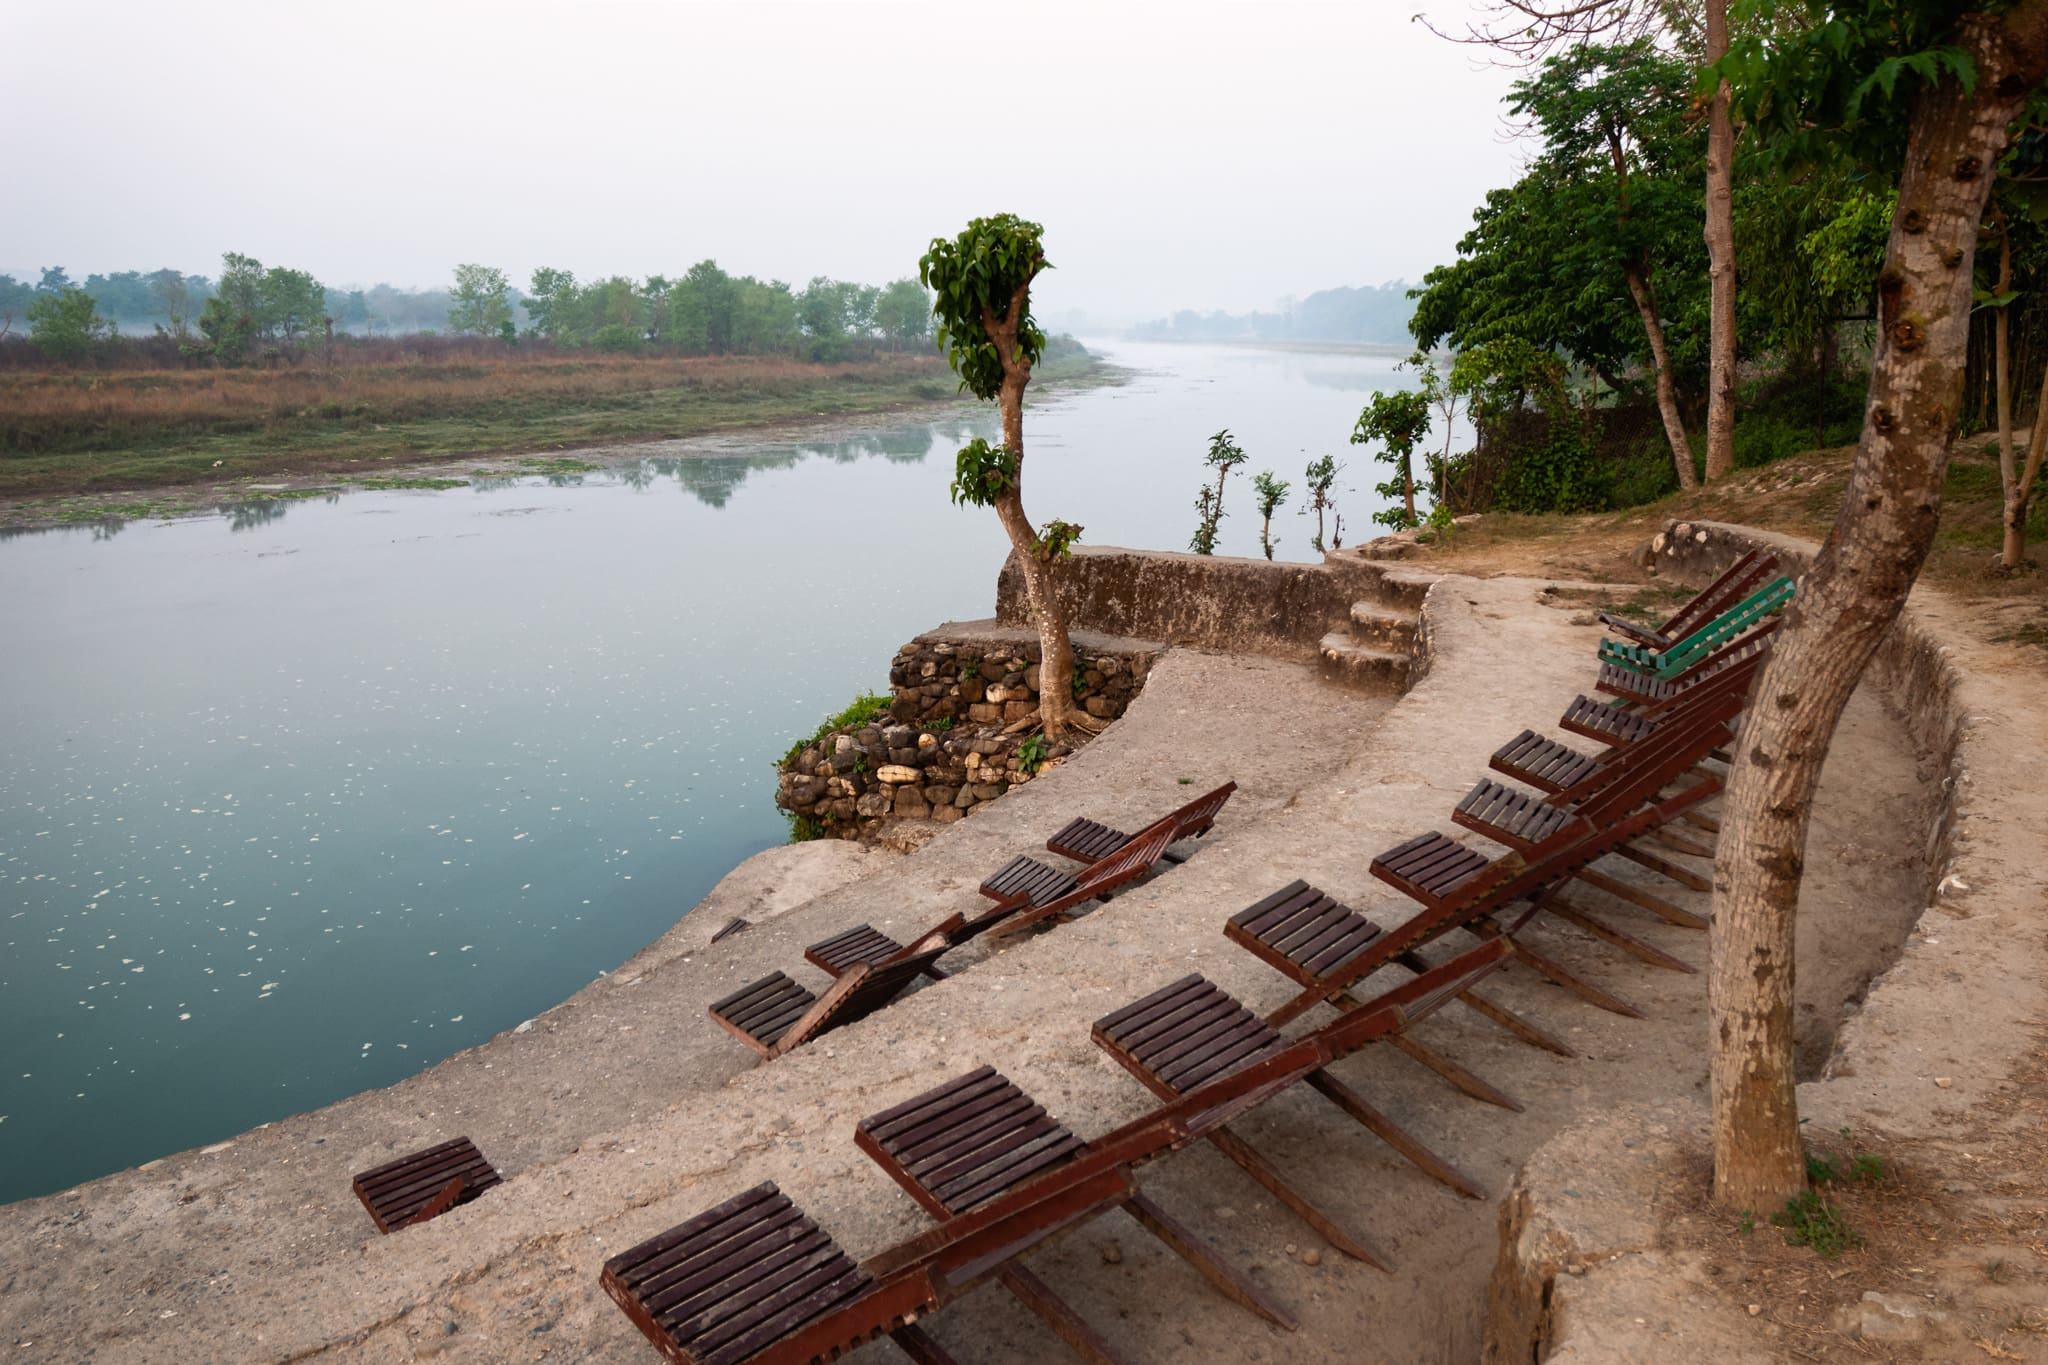 Narayani River, Chitwan National Park. Chitwan Riverside Resort, Nepal.